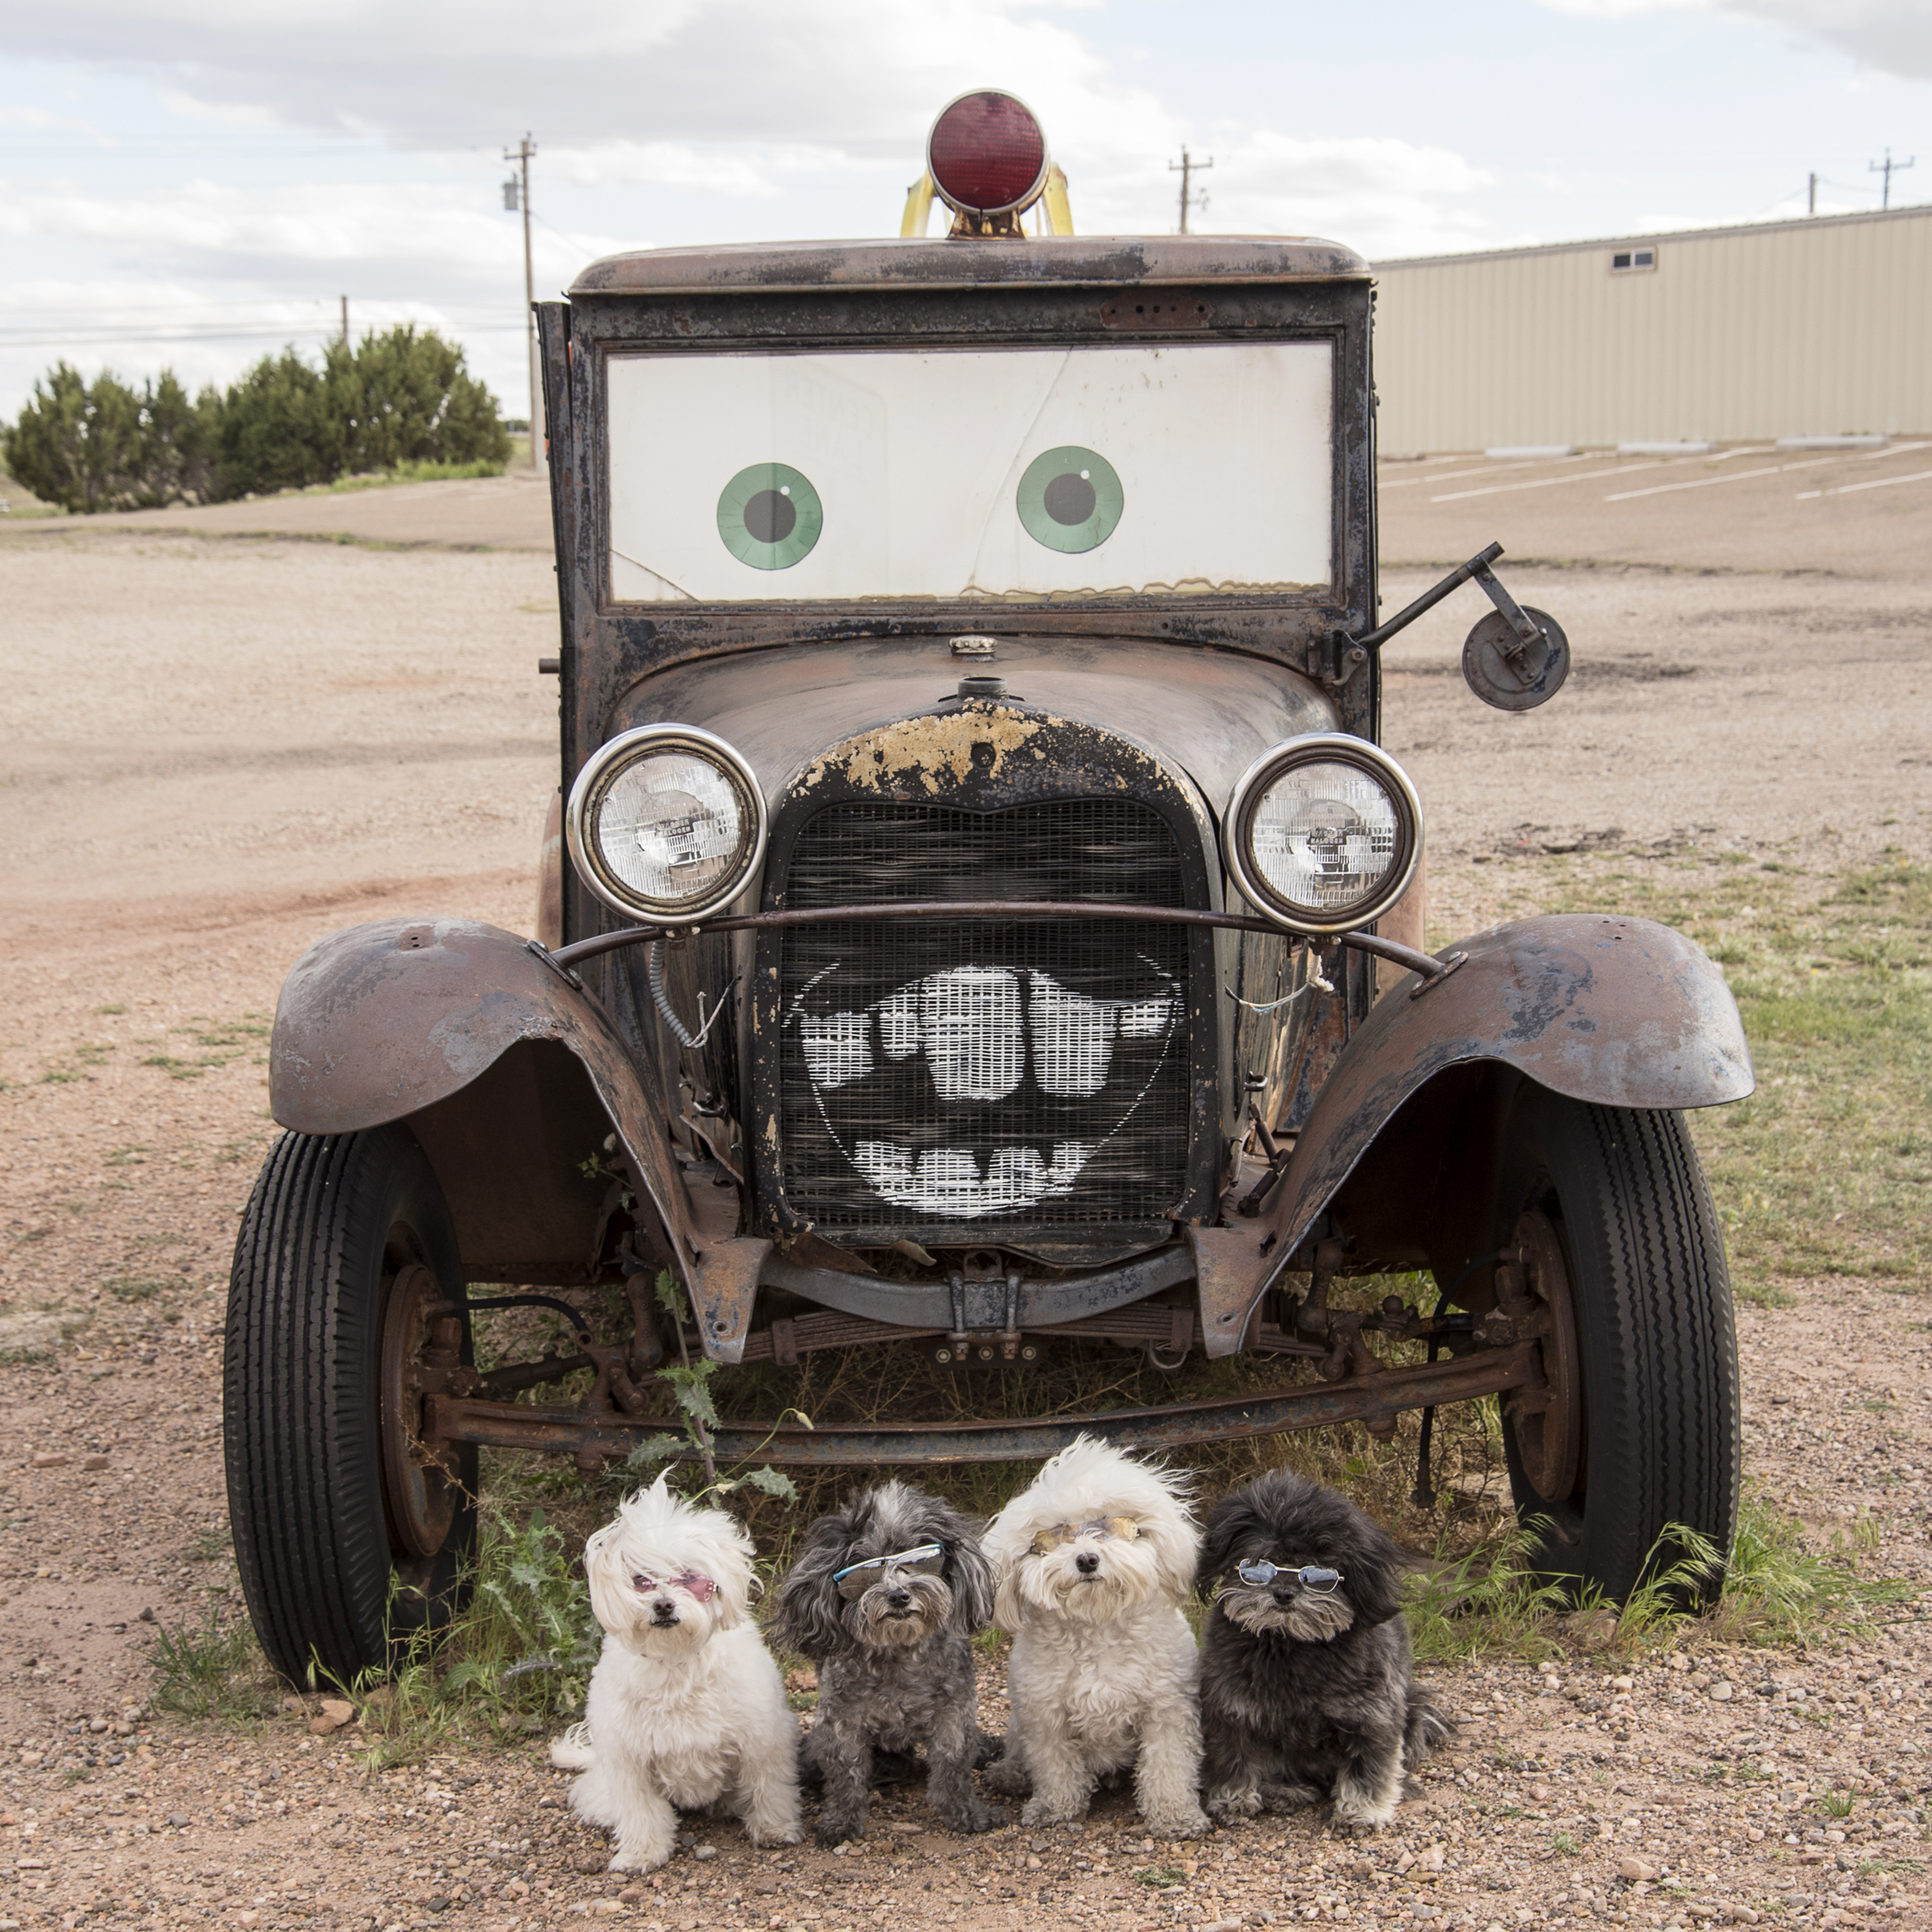 Look who we ran into in Santa Rosa, New Mexico!! It's Mater! Thank goodness we didn't need him…we just said hi!